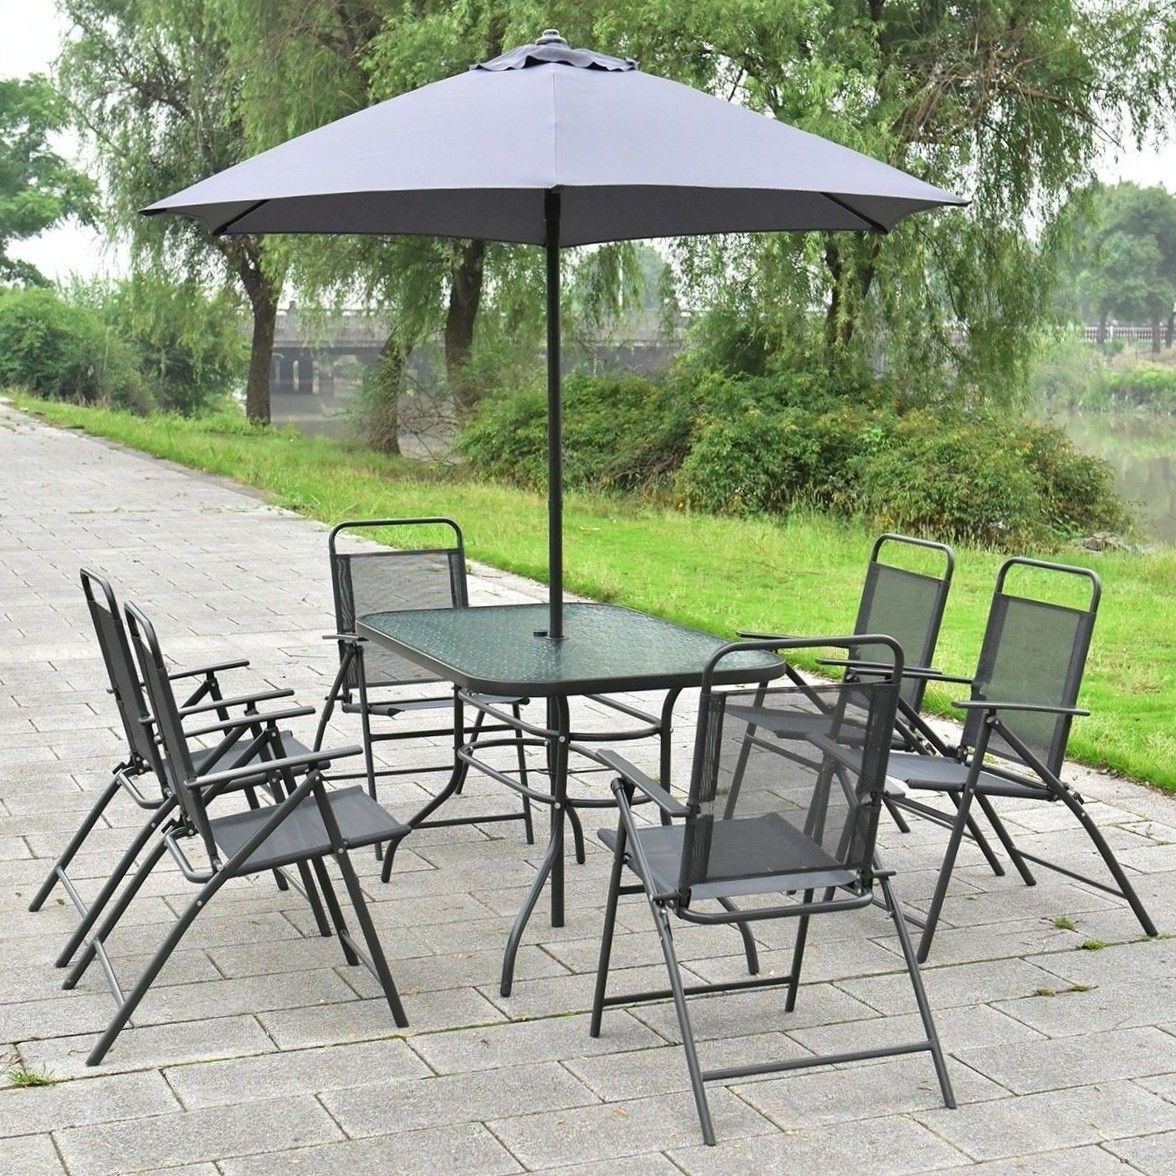 2018 Folding Outdoor Dining Tables Inside Patio 6 Piece Outdoor Dining Set Furniture Table Folding Chairs (View 13 of 25)